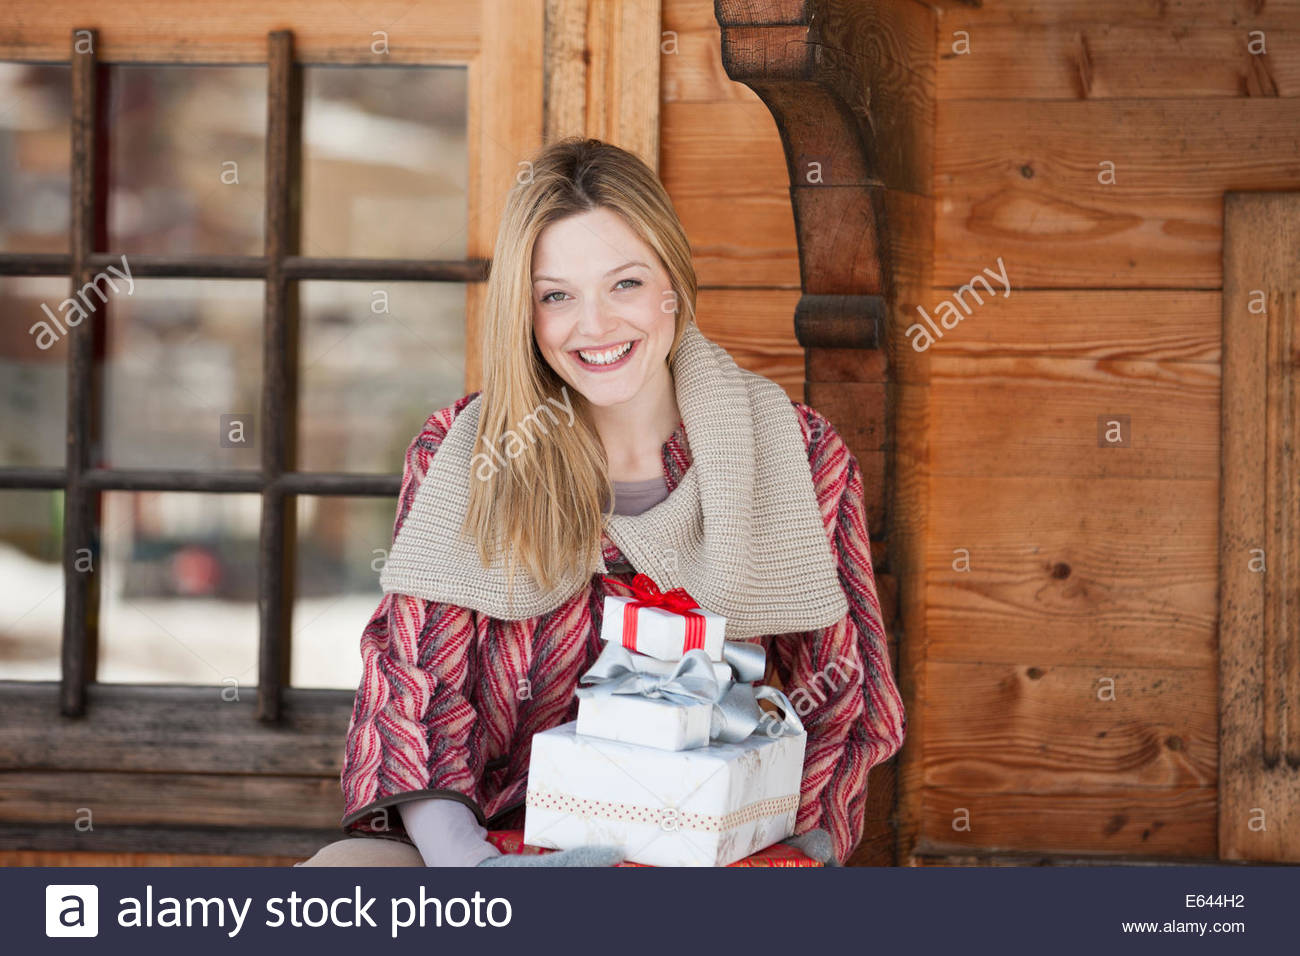 Portrait of smiling woman holding Christmas gifts on cabin porch - Stock Image